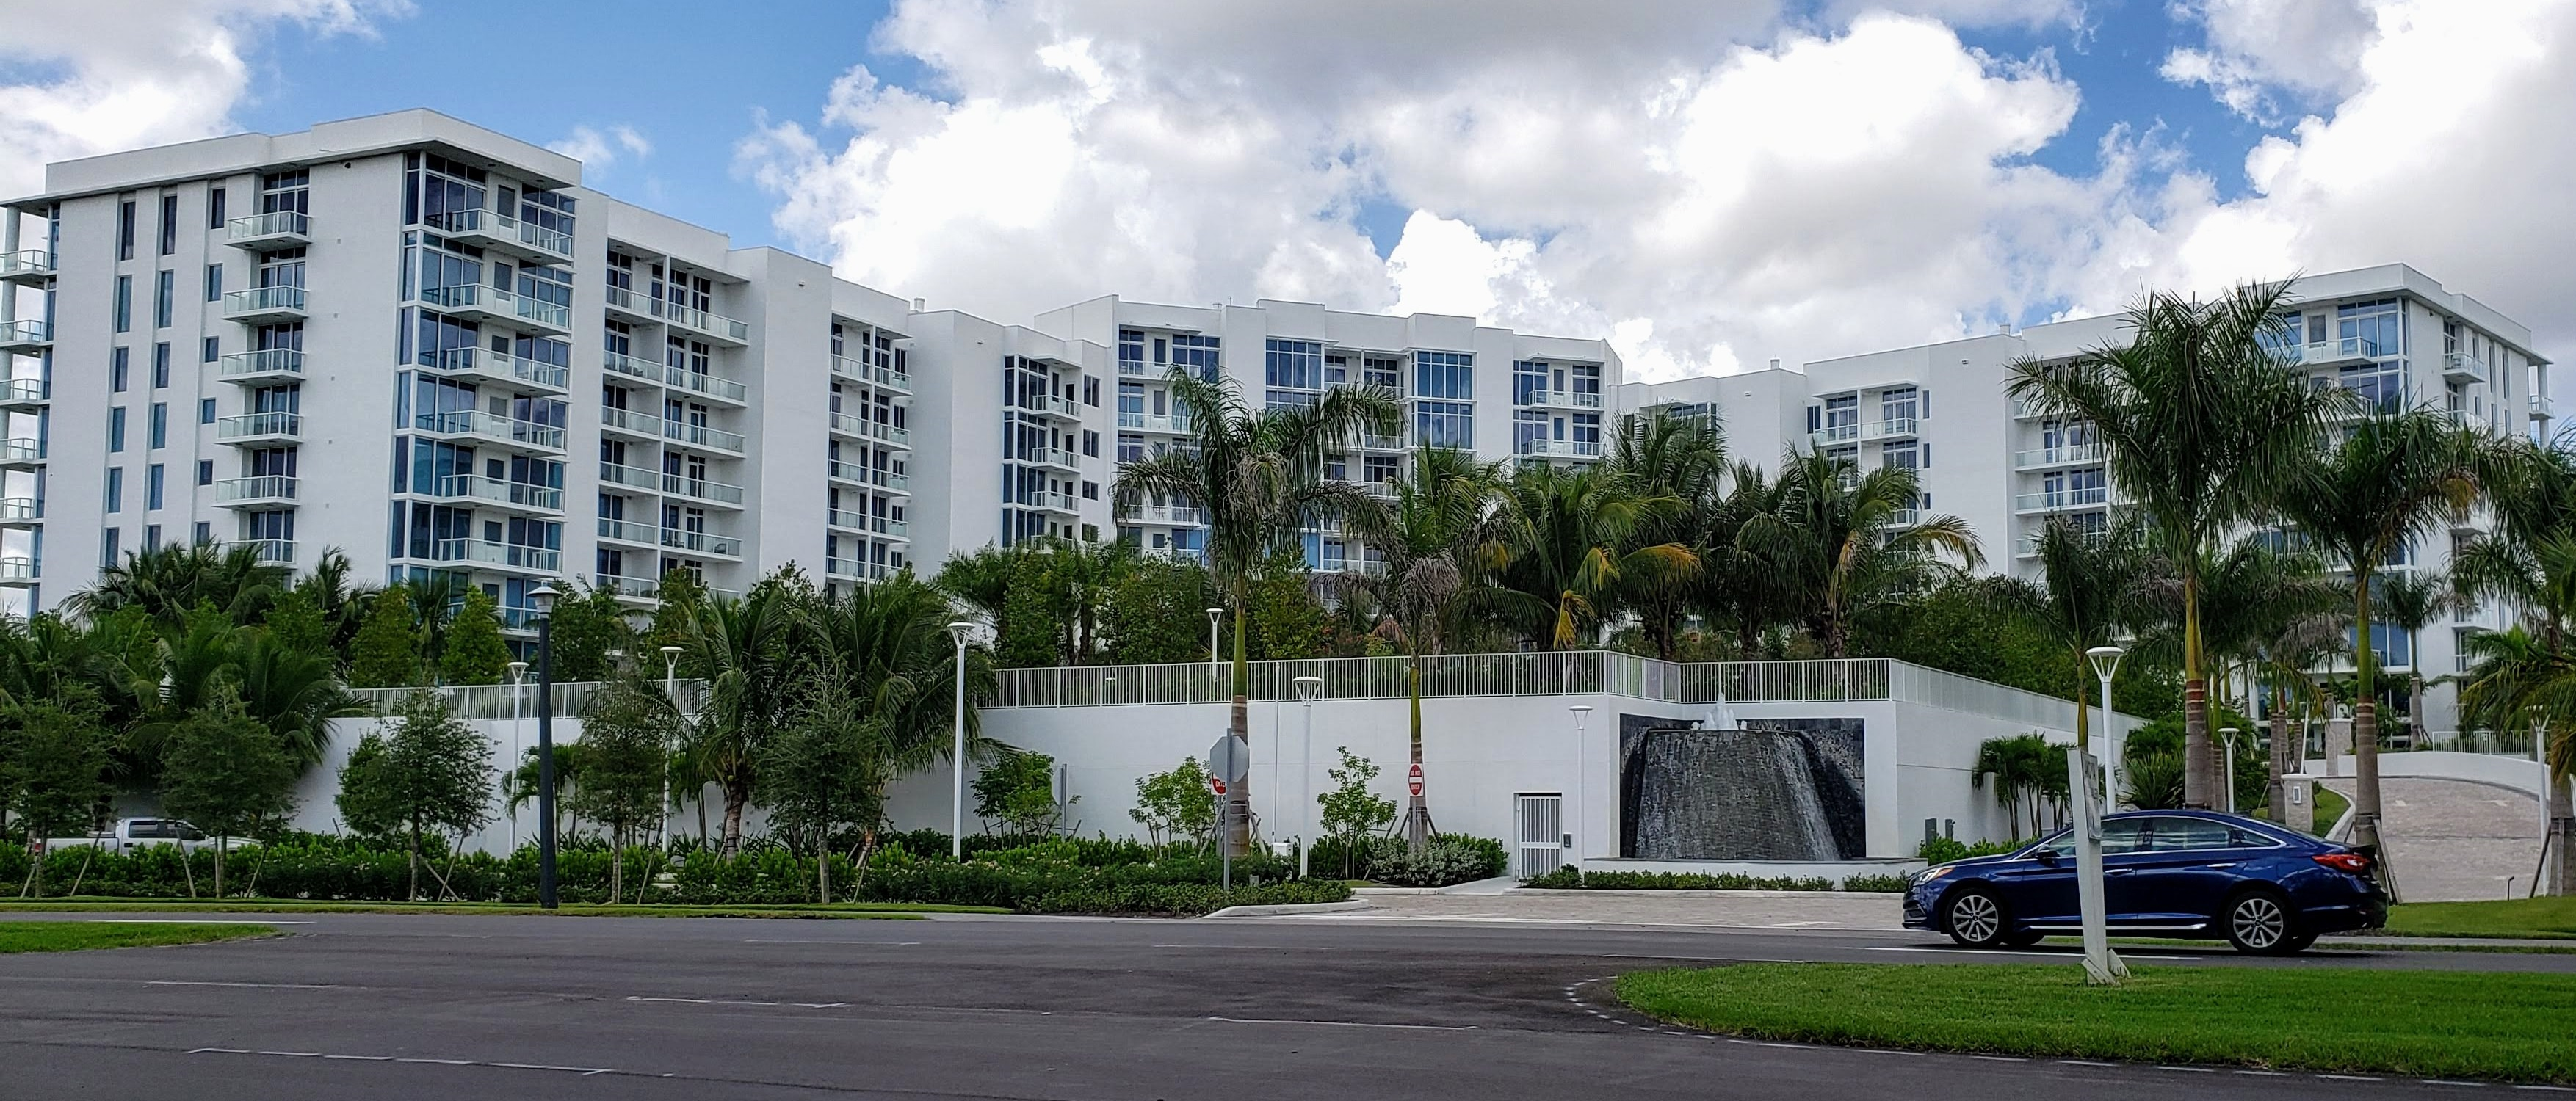 Boca Raton Akoya luxury condo construction in Boca West for Jean-Luc Andriot blog 090519